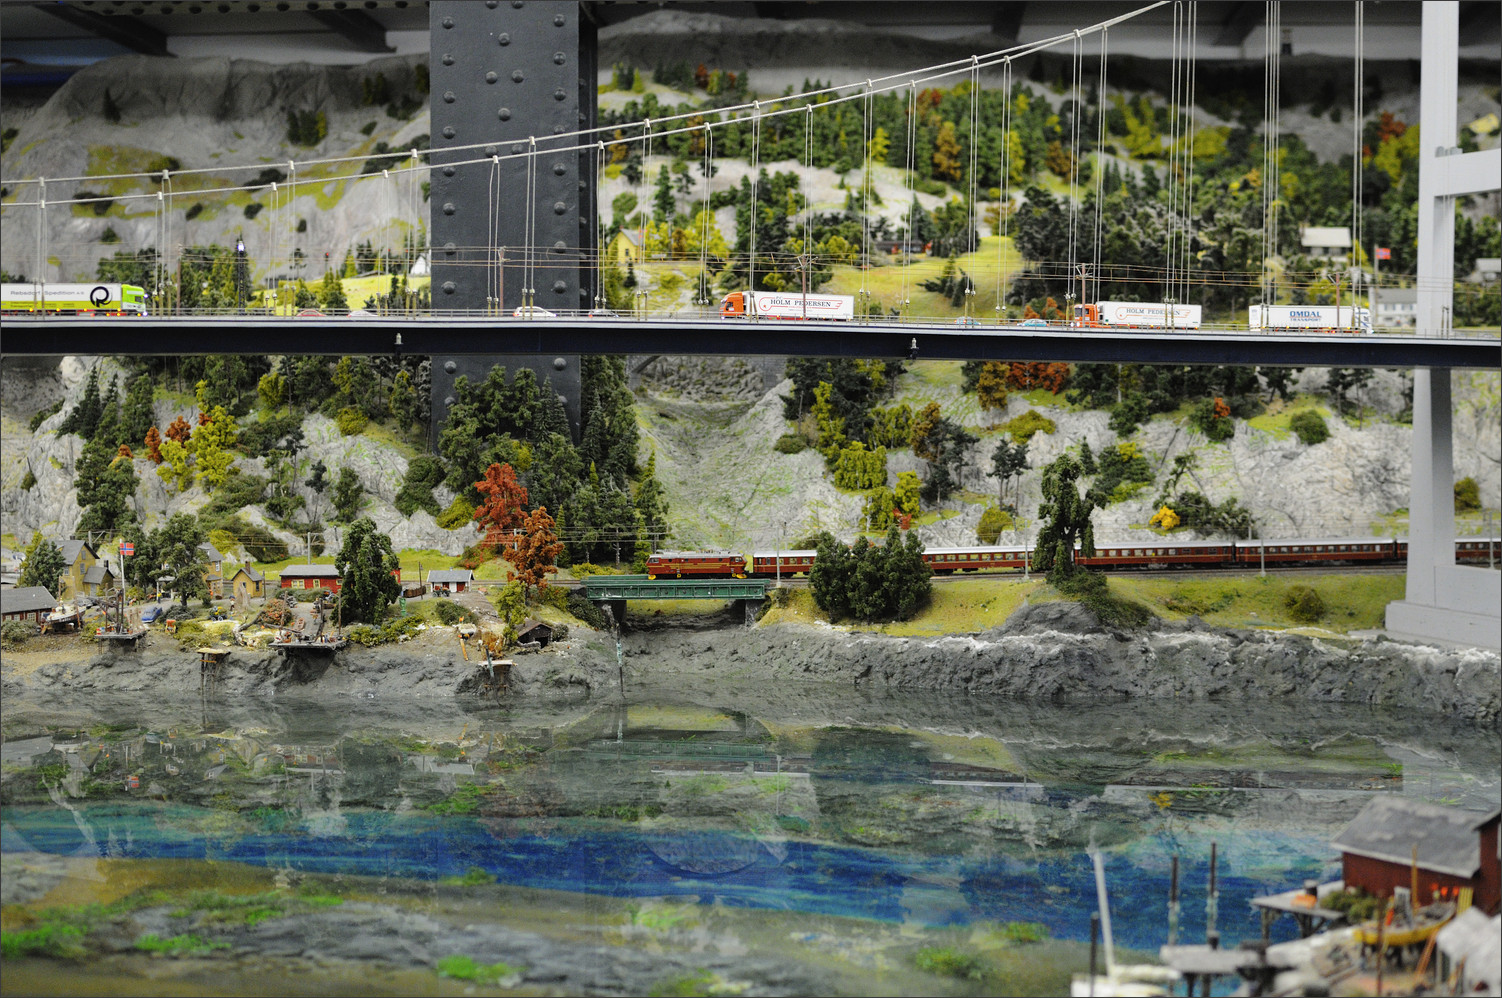 Surreal Miniatur Wunderland Comes To Life -homesthetics (2)